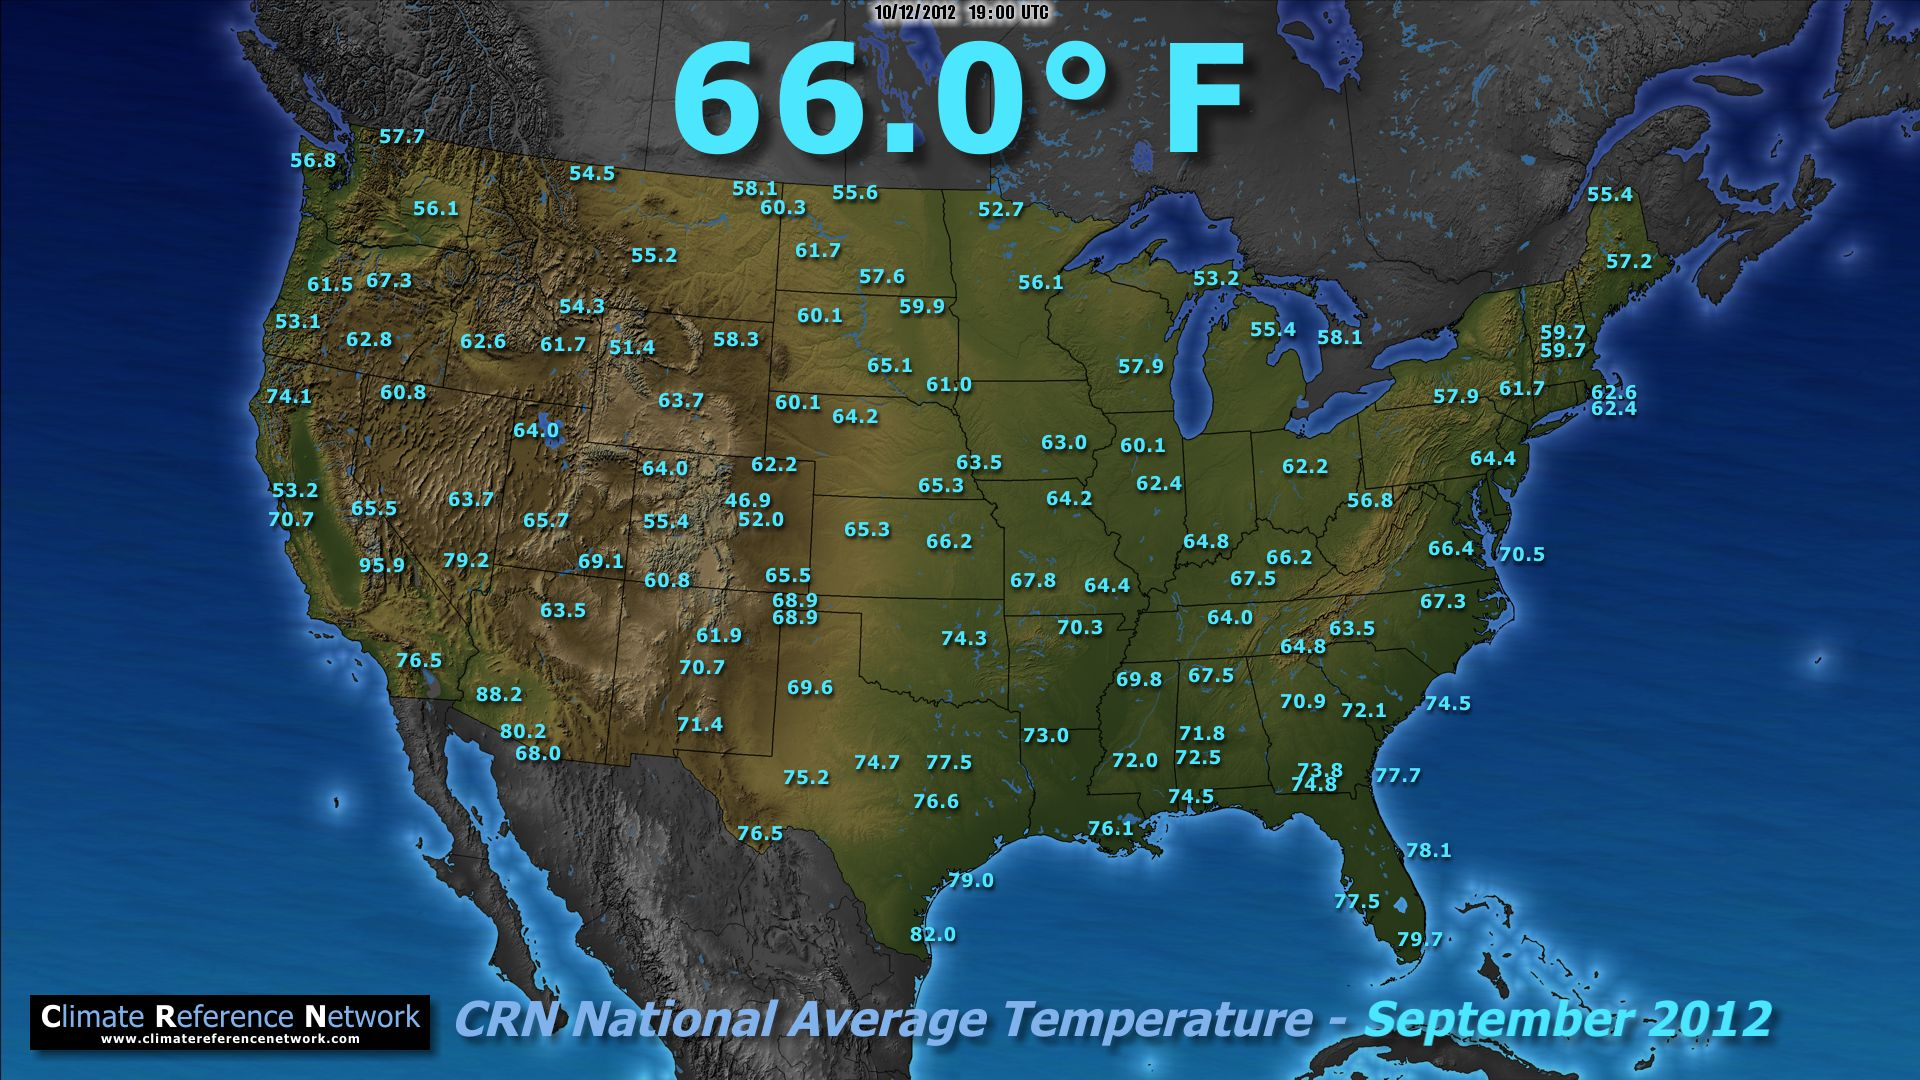 crnmap-monthly-avg-temp-f_stations_national_1920x1080_201209